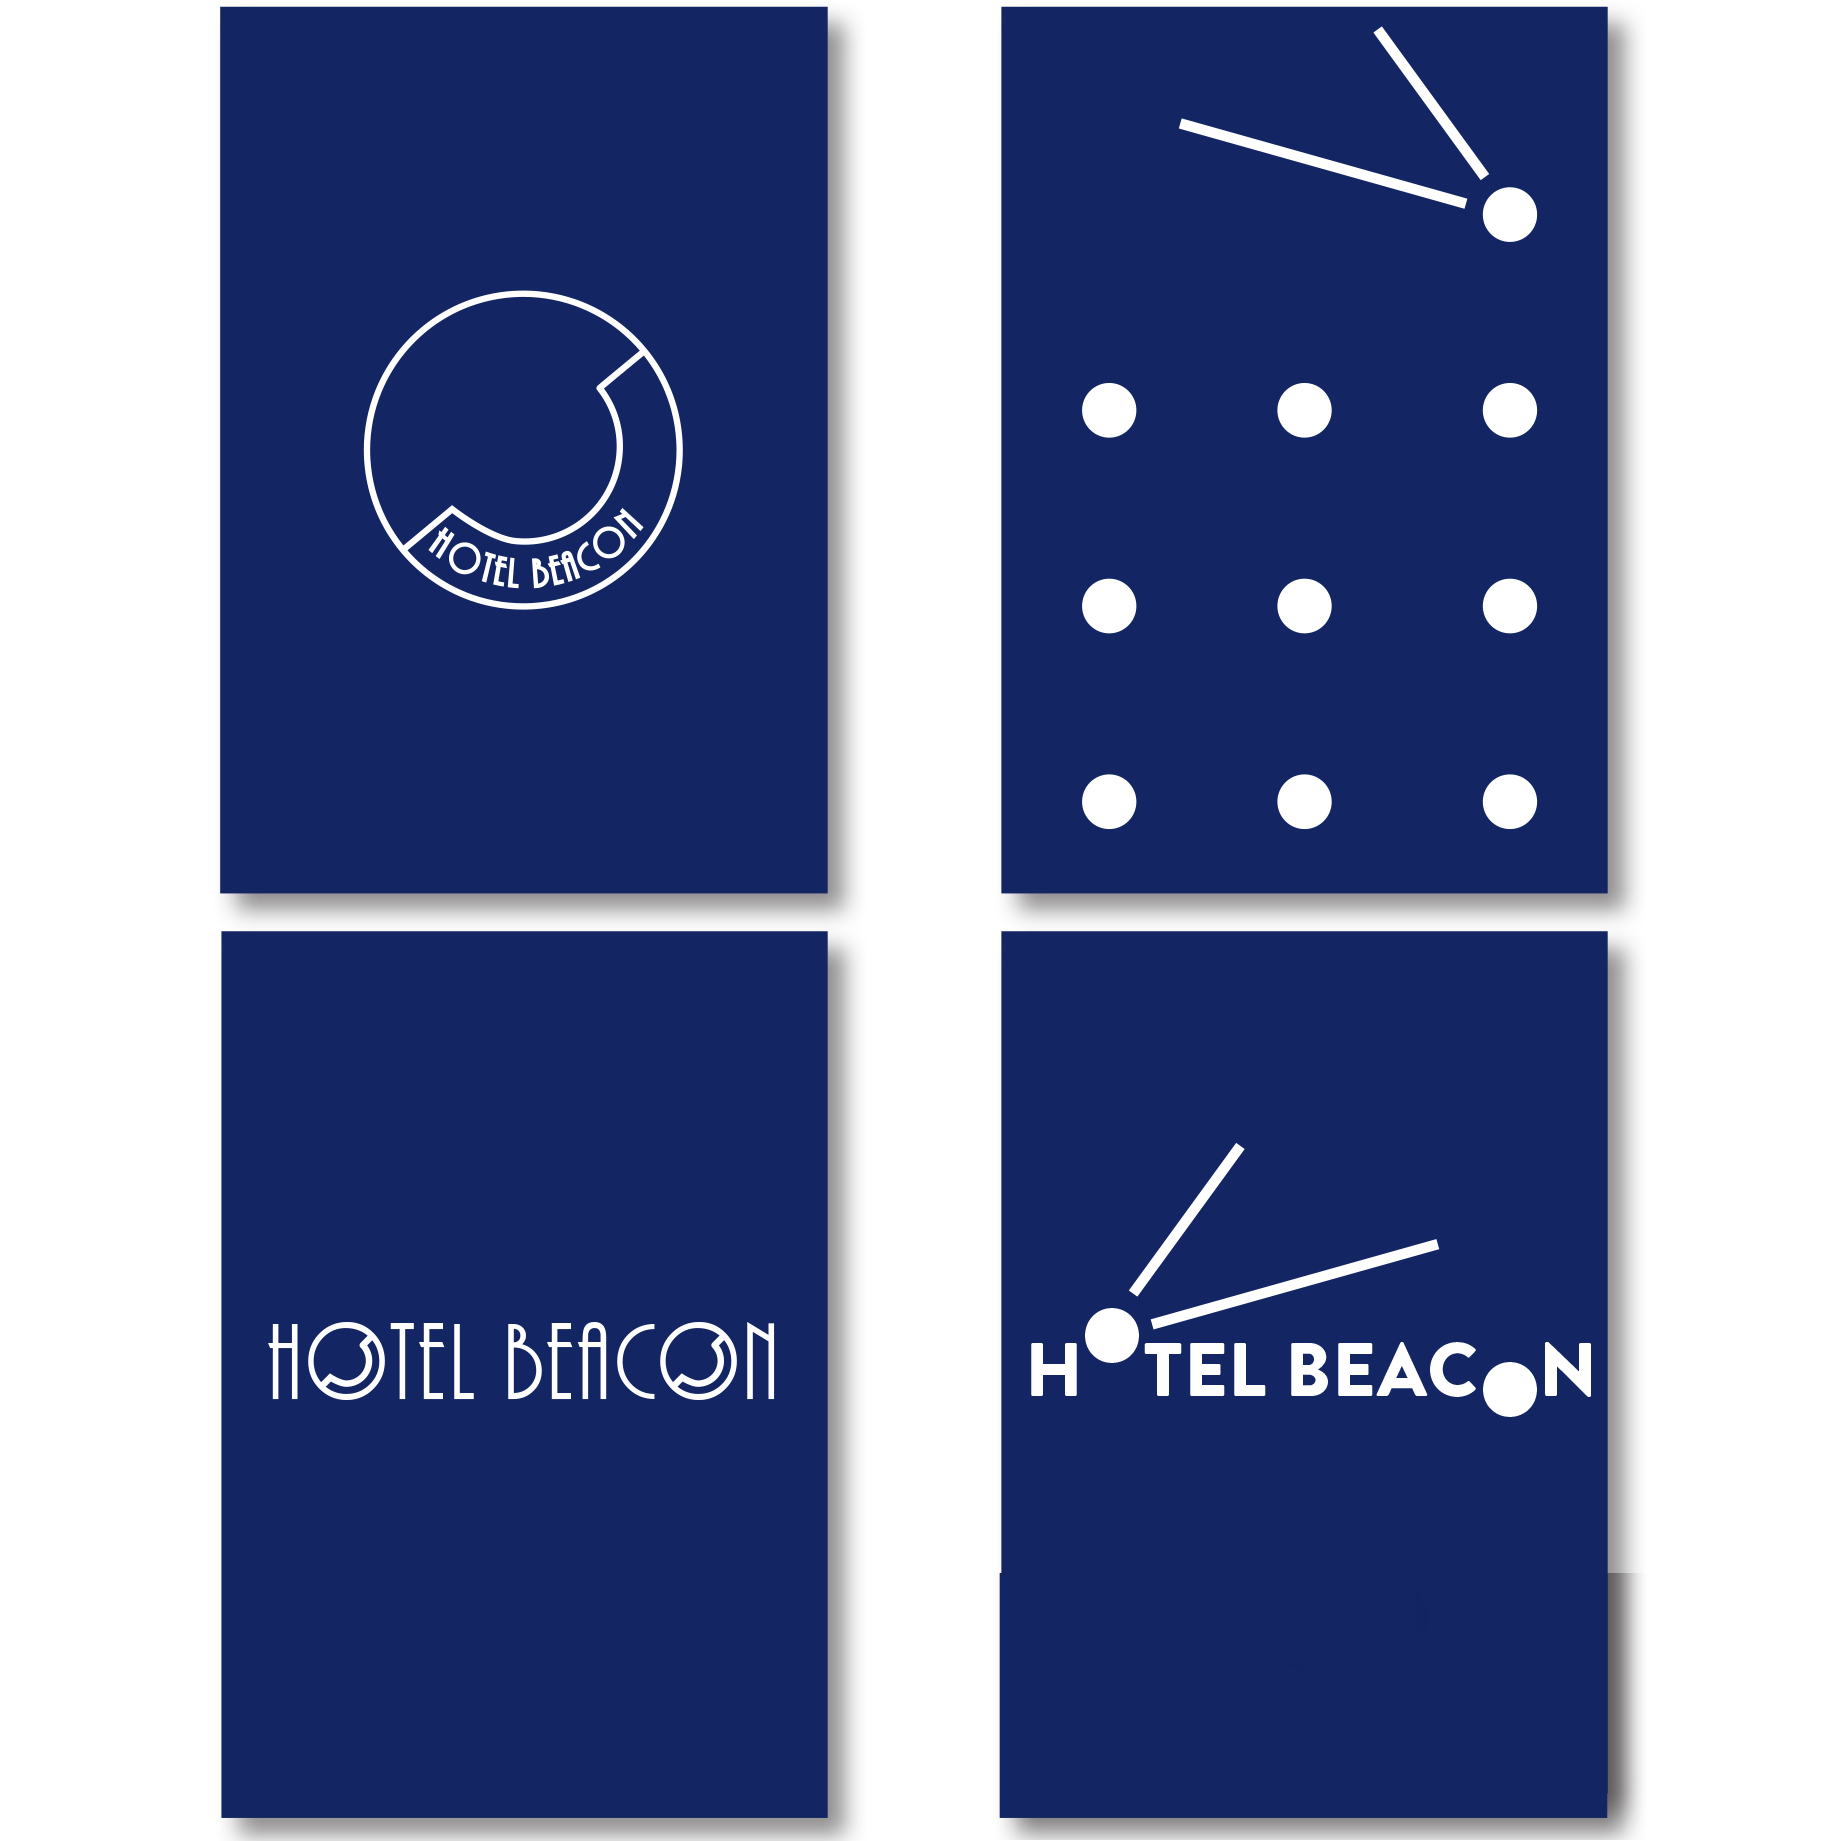 Beacon Hotel_logos02.png